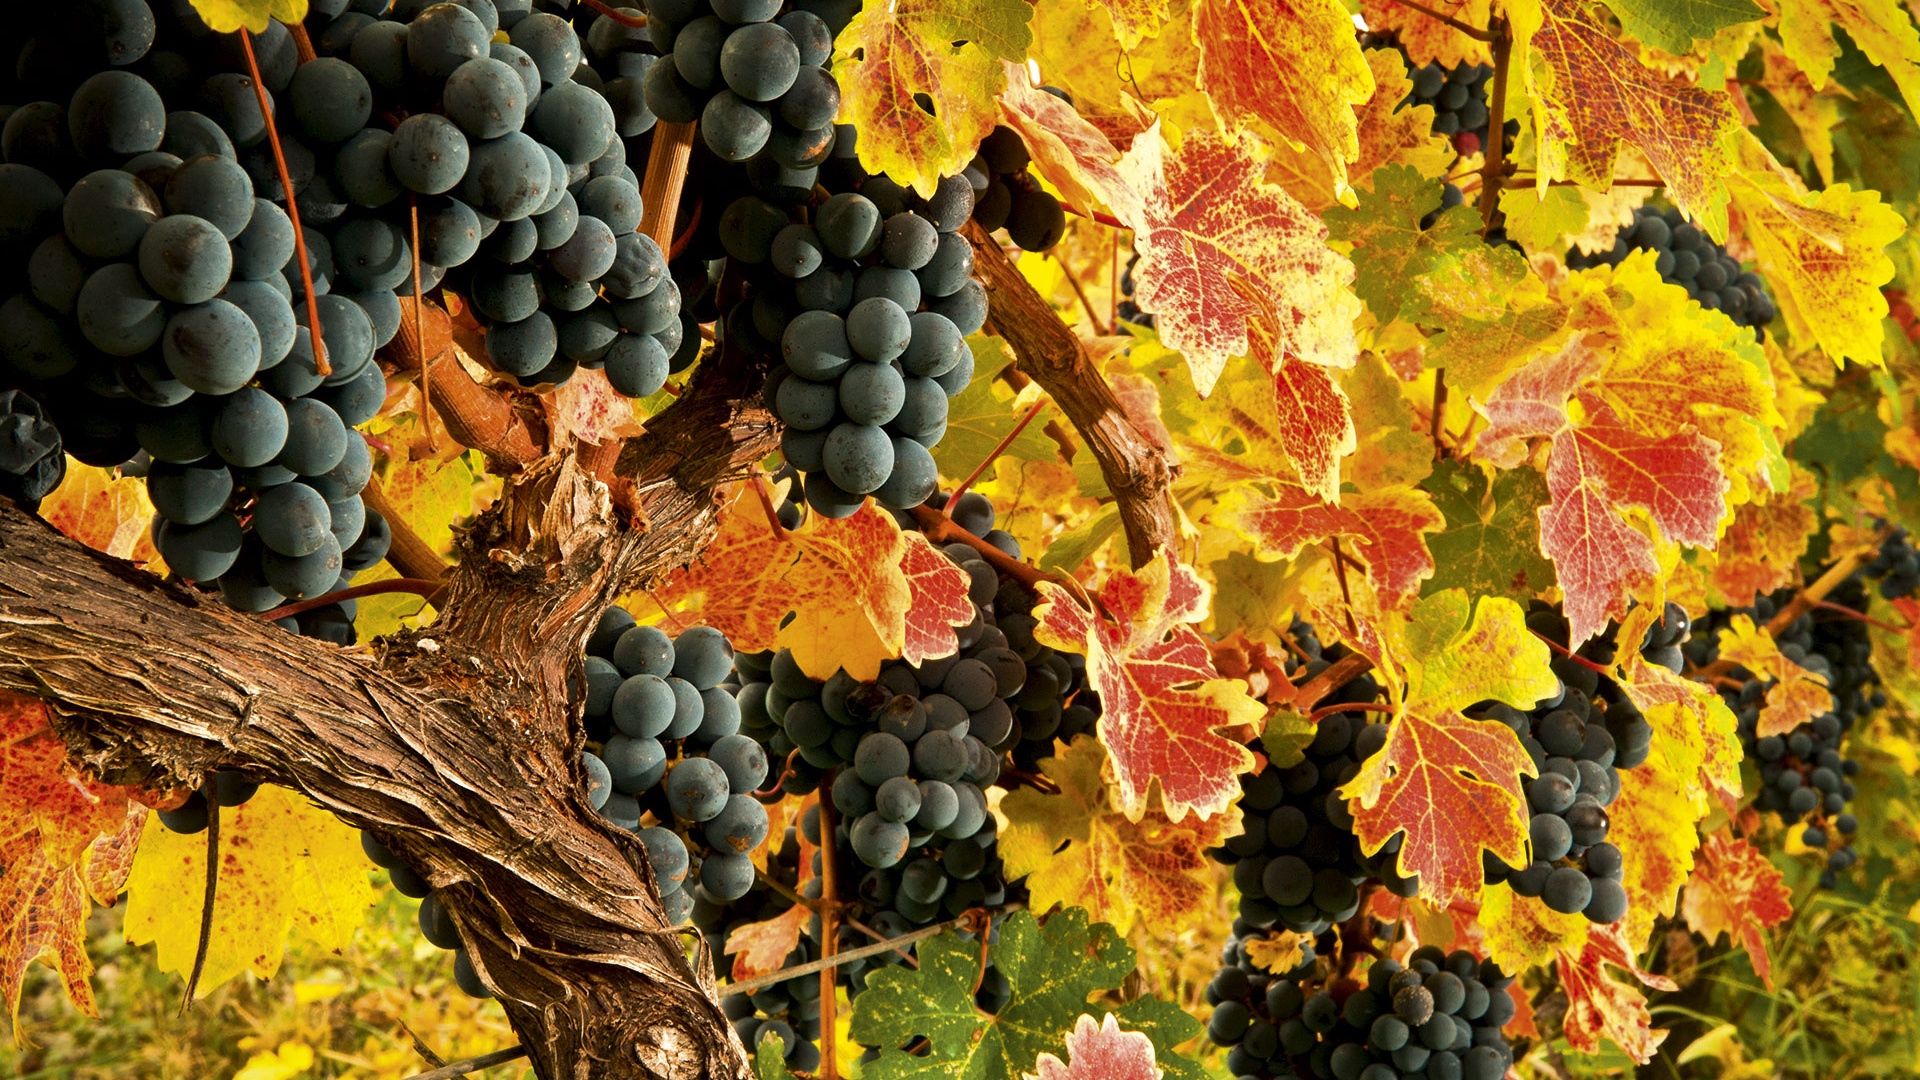 Bunches of Georgian grapes. Photograph by EcoFilms Georgia/Shutterstock